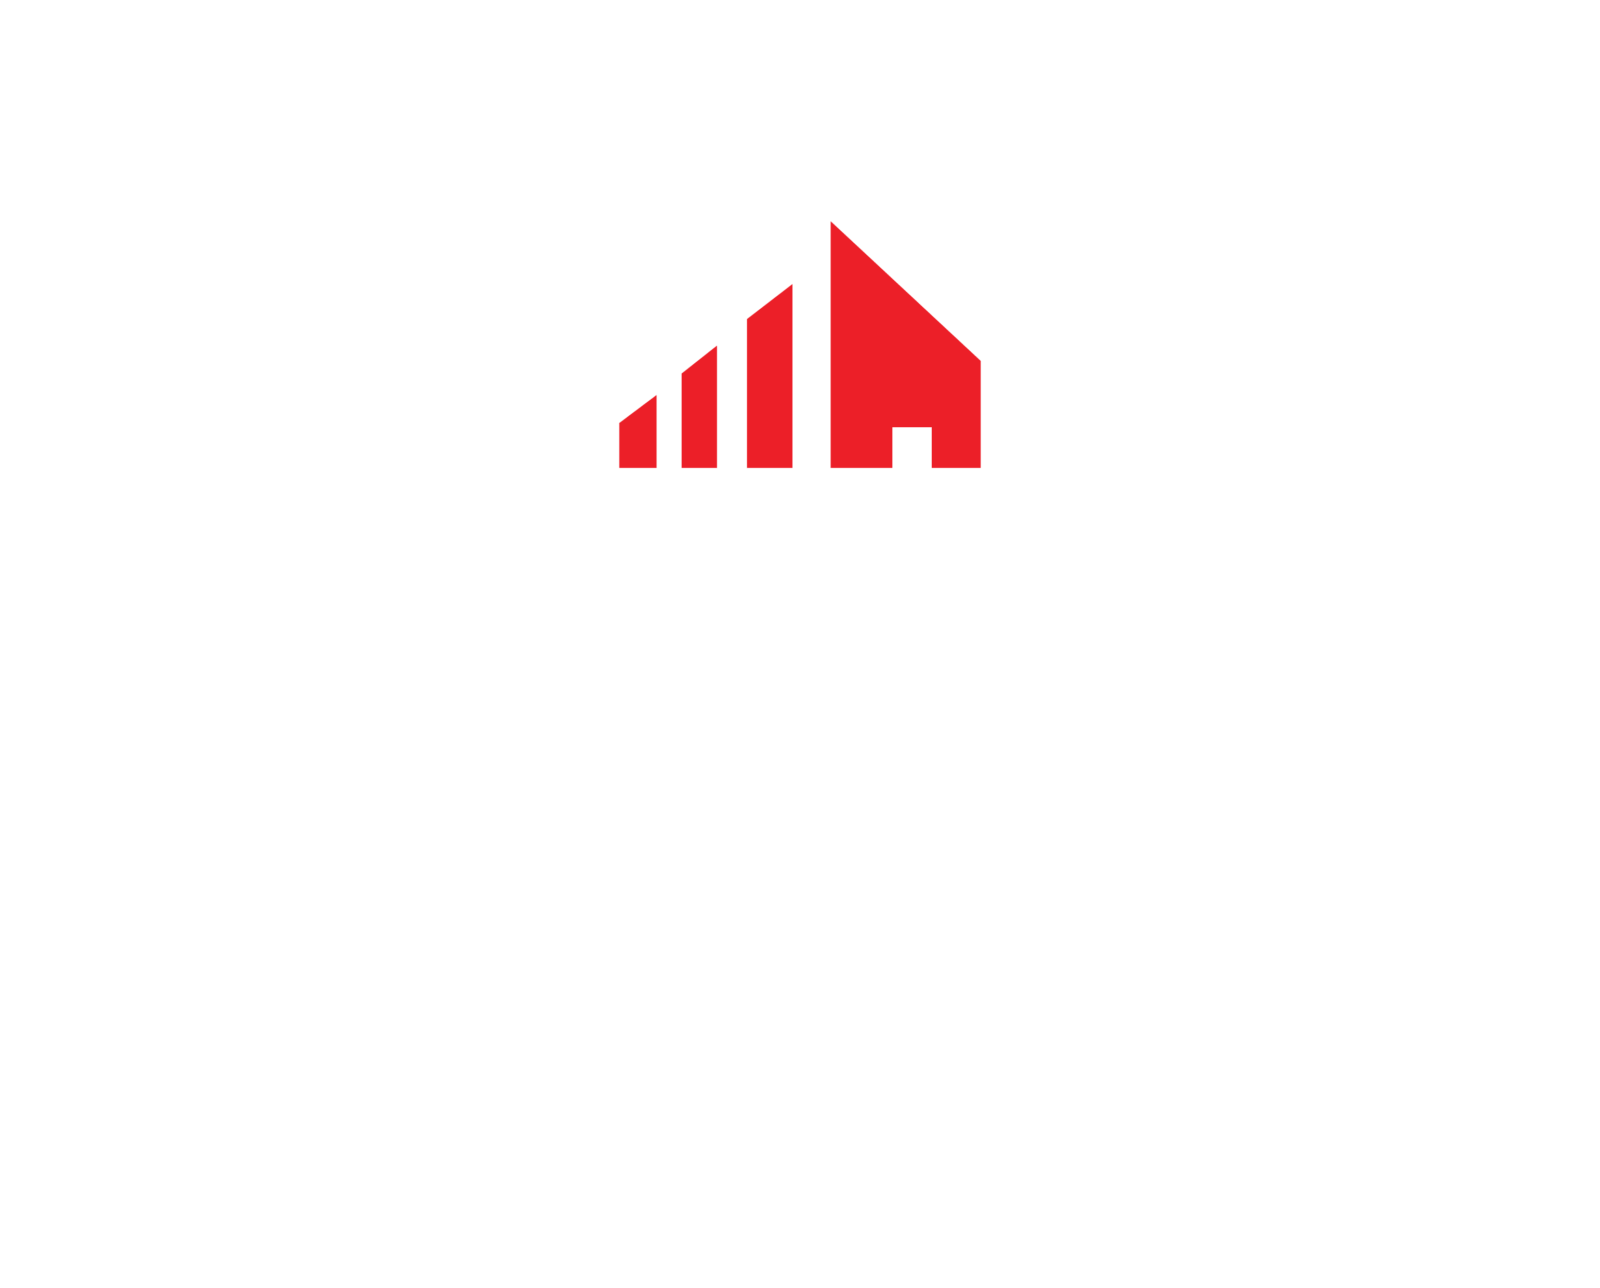 Coulombe & Hay Real Estate Group